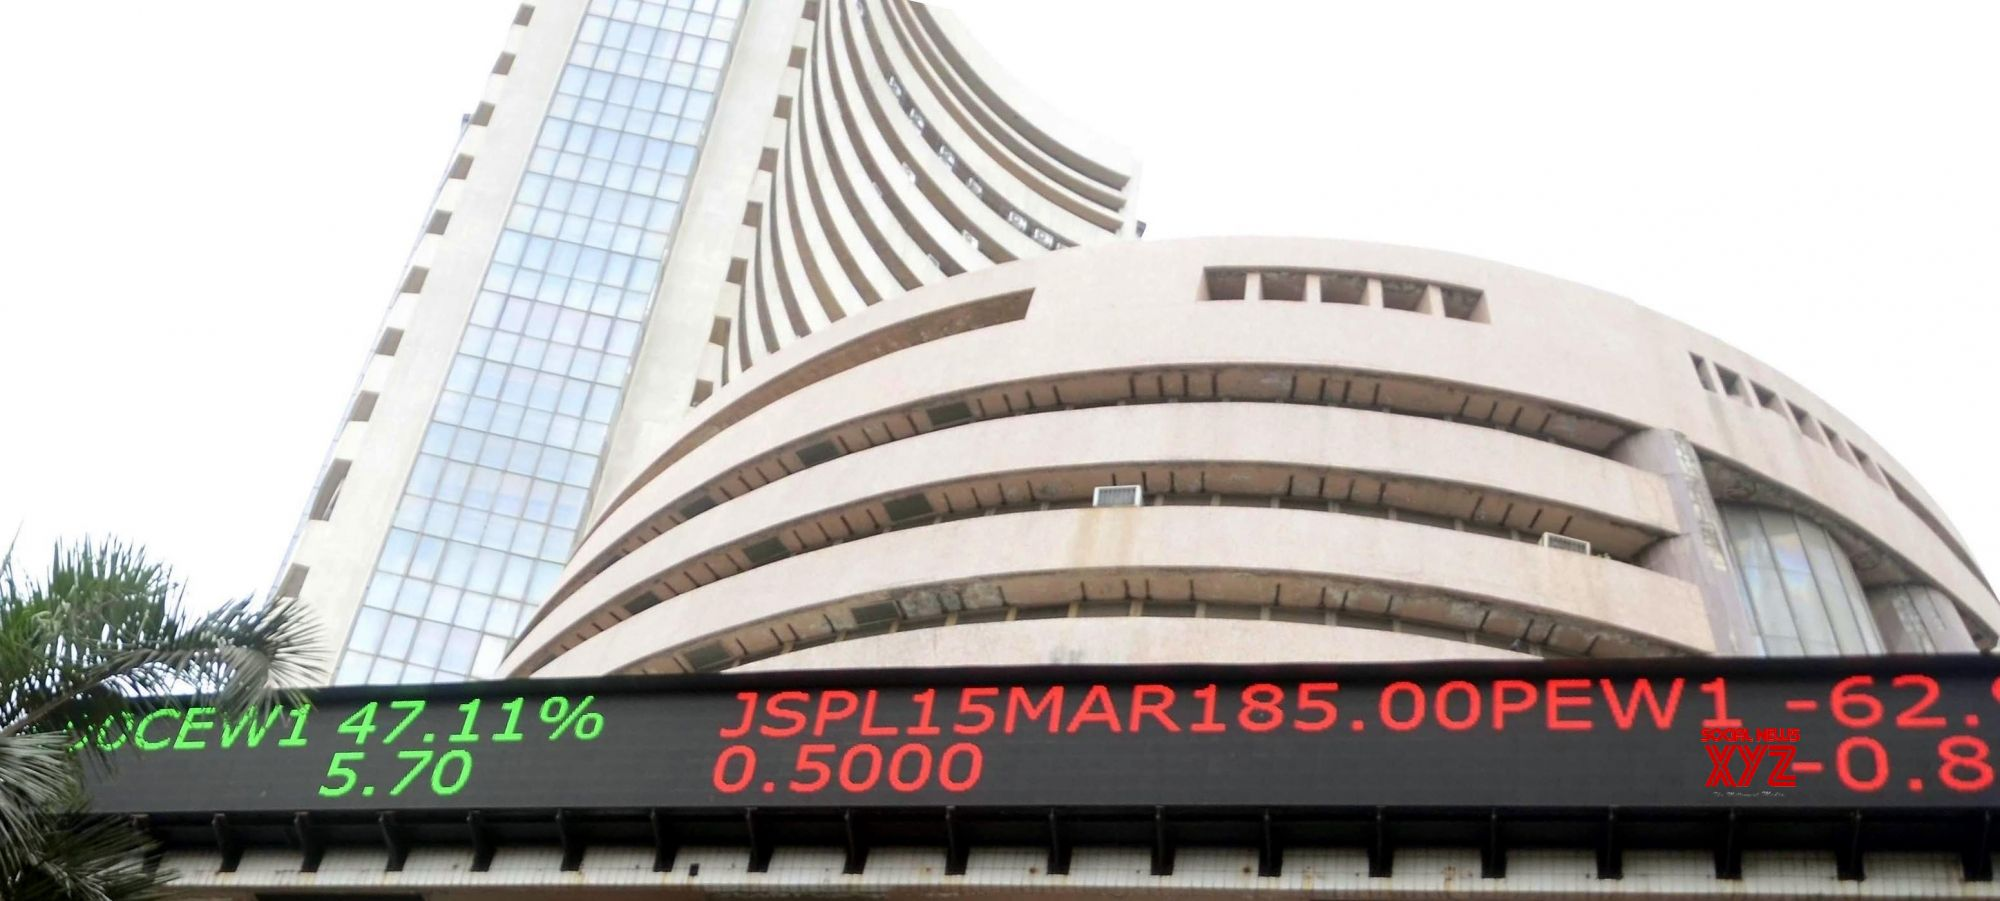 Sensex, Nifty end 2% lower amidst global sell-off and weak rupee